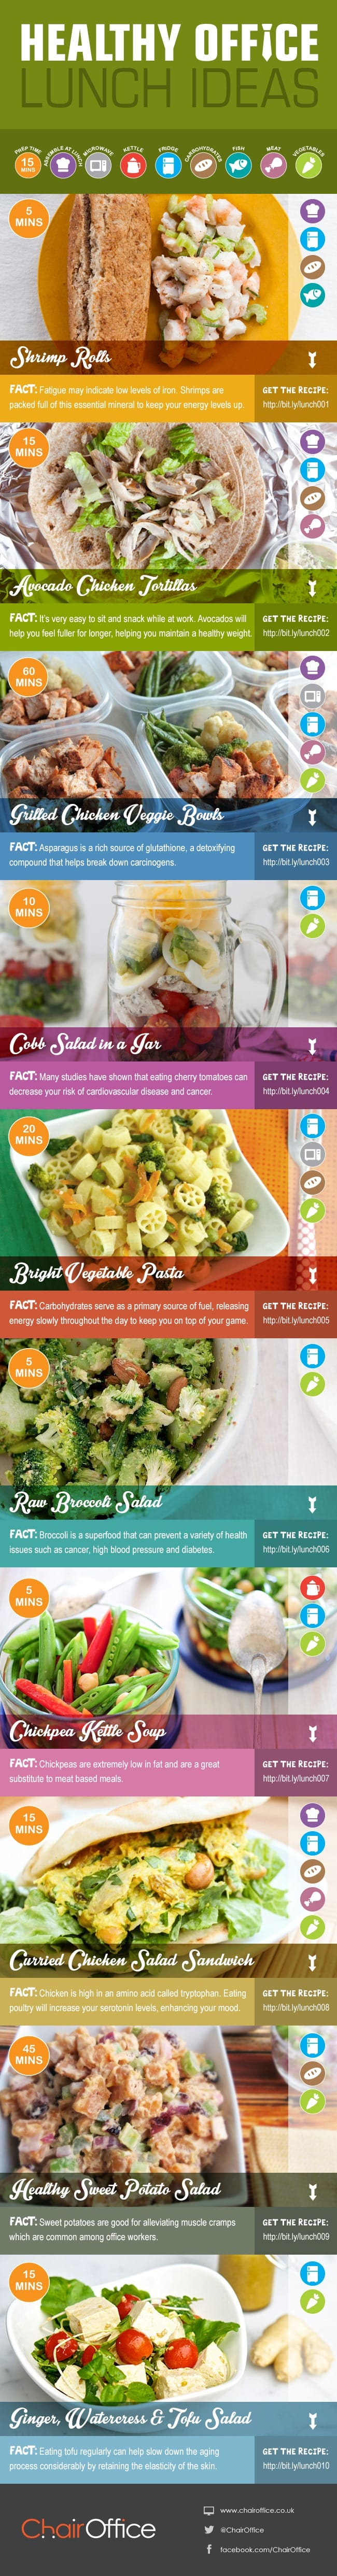 healthy-office-lunch-ideas